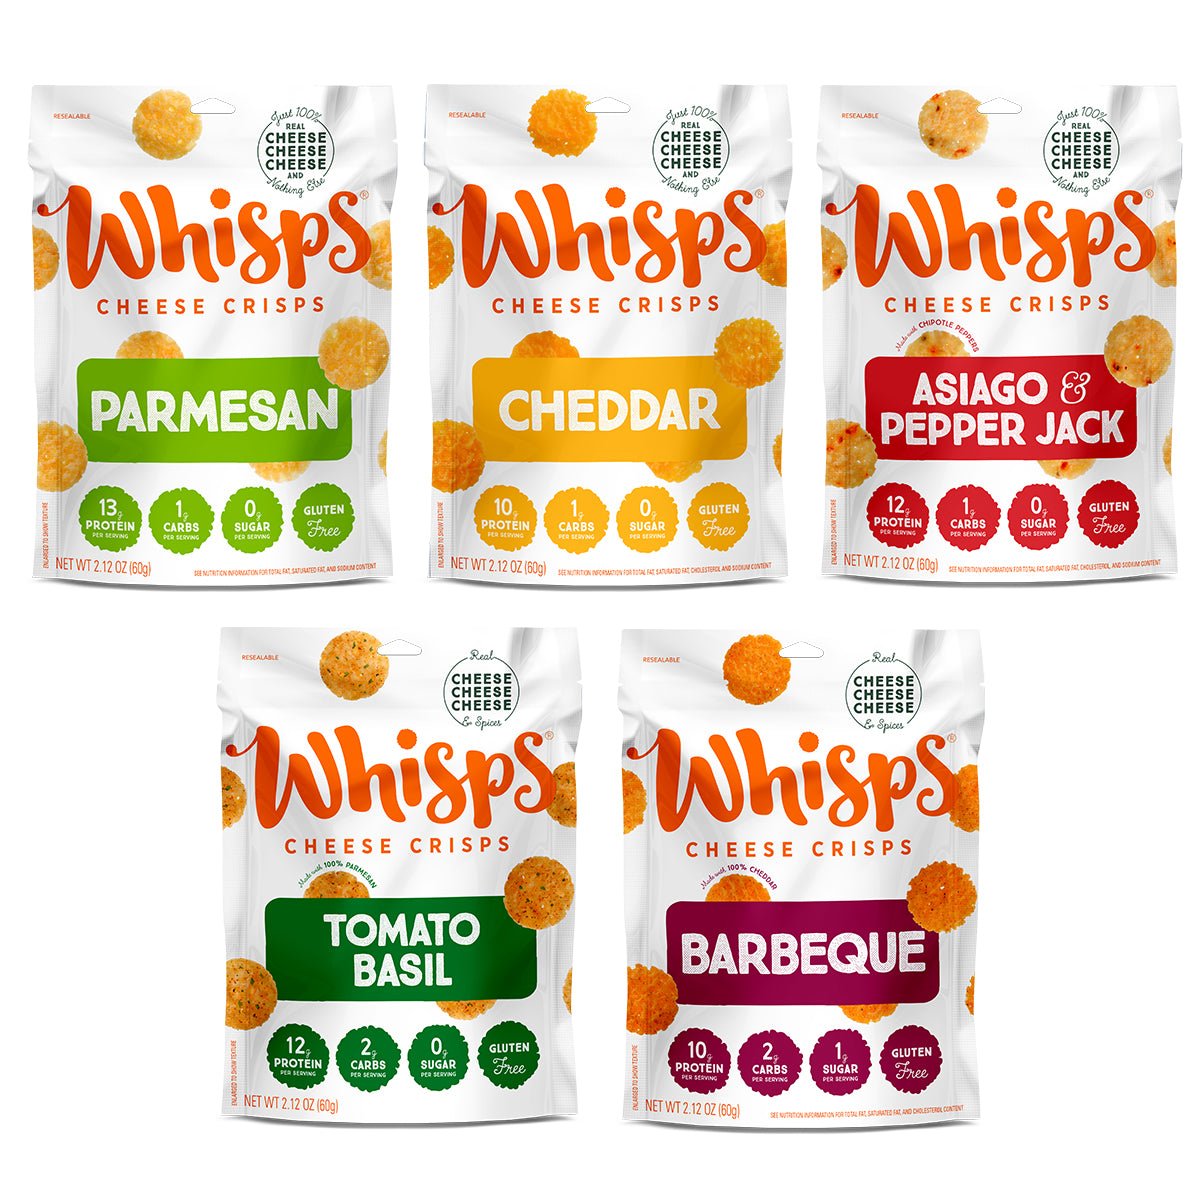 Buy Whisps Parmesan, Cheddar, Asiago Pepper Jack, BBQ, Tomato Basil Variety Pack on Amazon